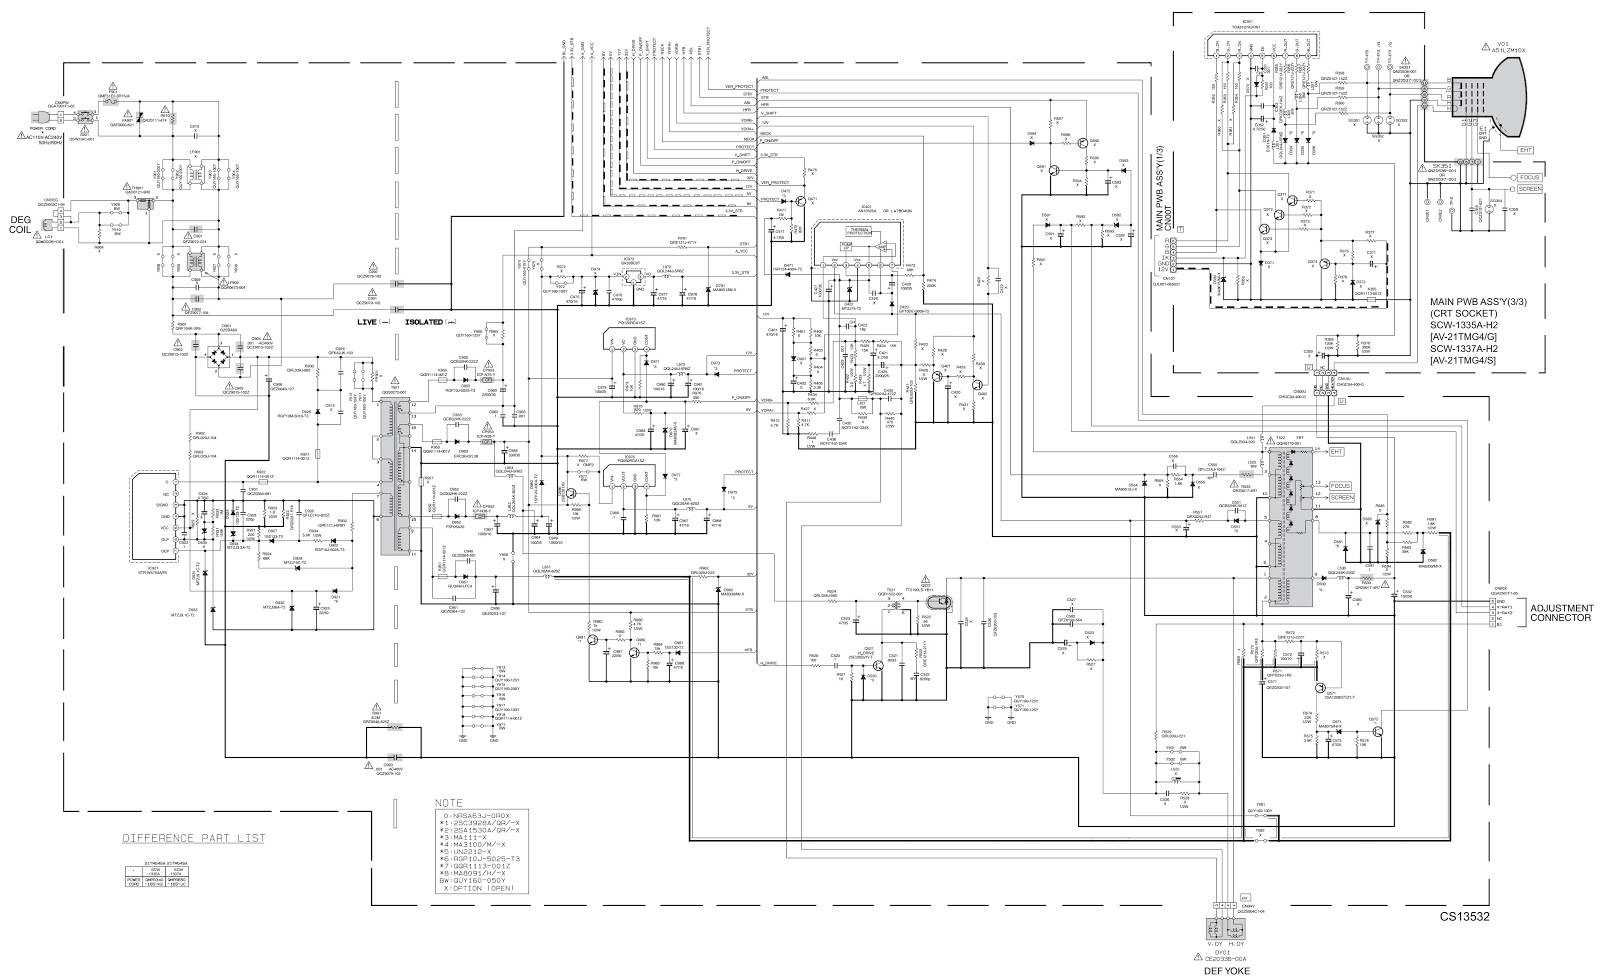 tv vcr wiring diagram wiring diagram mega tv vcr wiring diagram wiring diagram database tv vcr wiring diagram